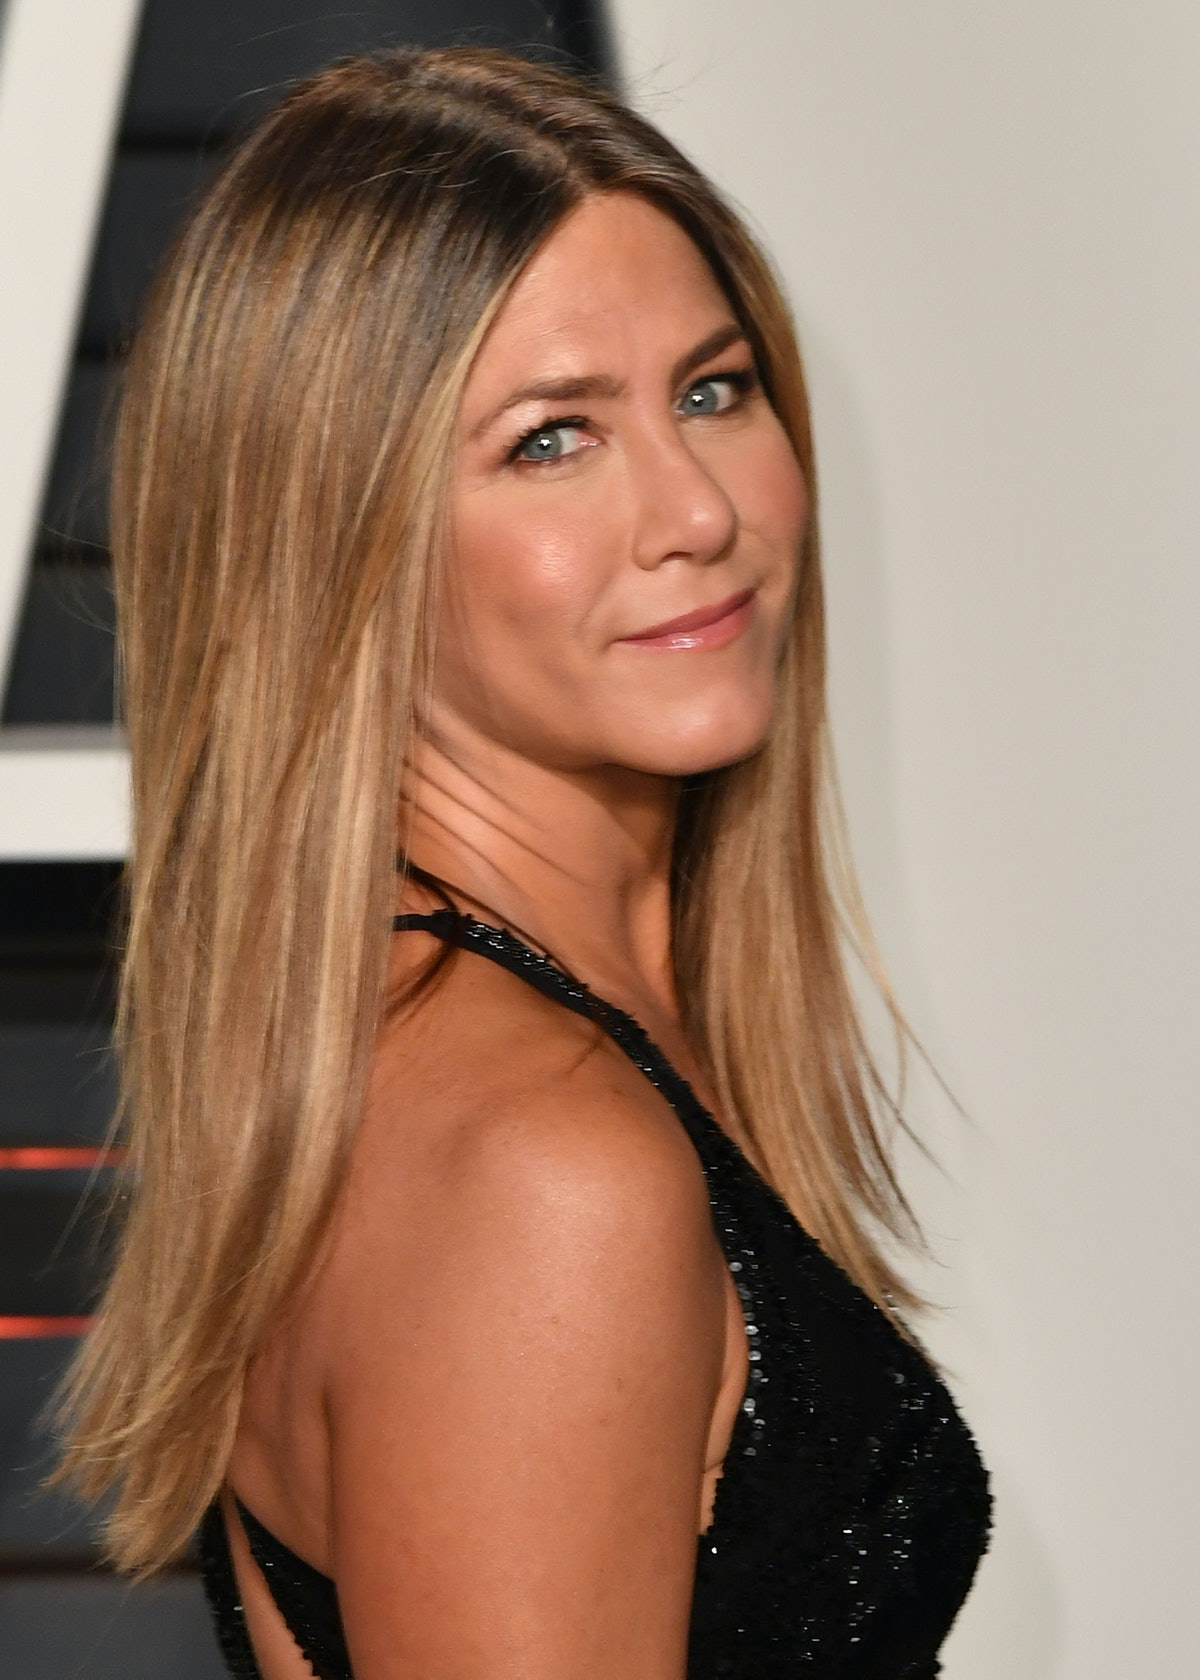 BEVERLY HILLS, CA - FEBRUARY 26:  Actress Jennifer Aniston attends the 2017 Vanity Fair Oscar Party ...